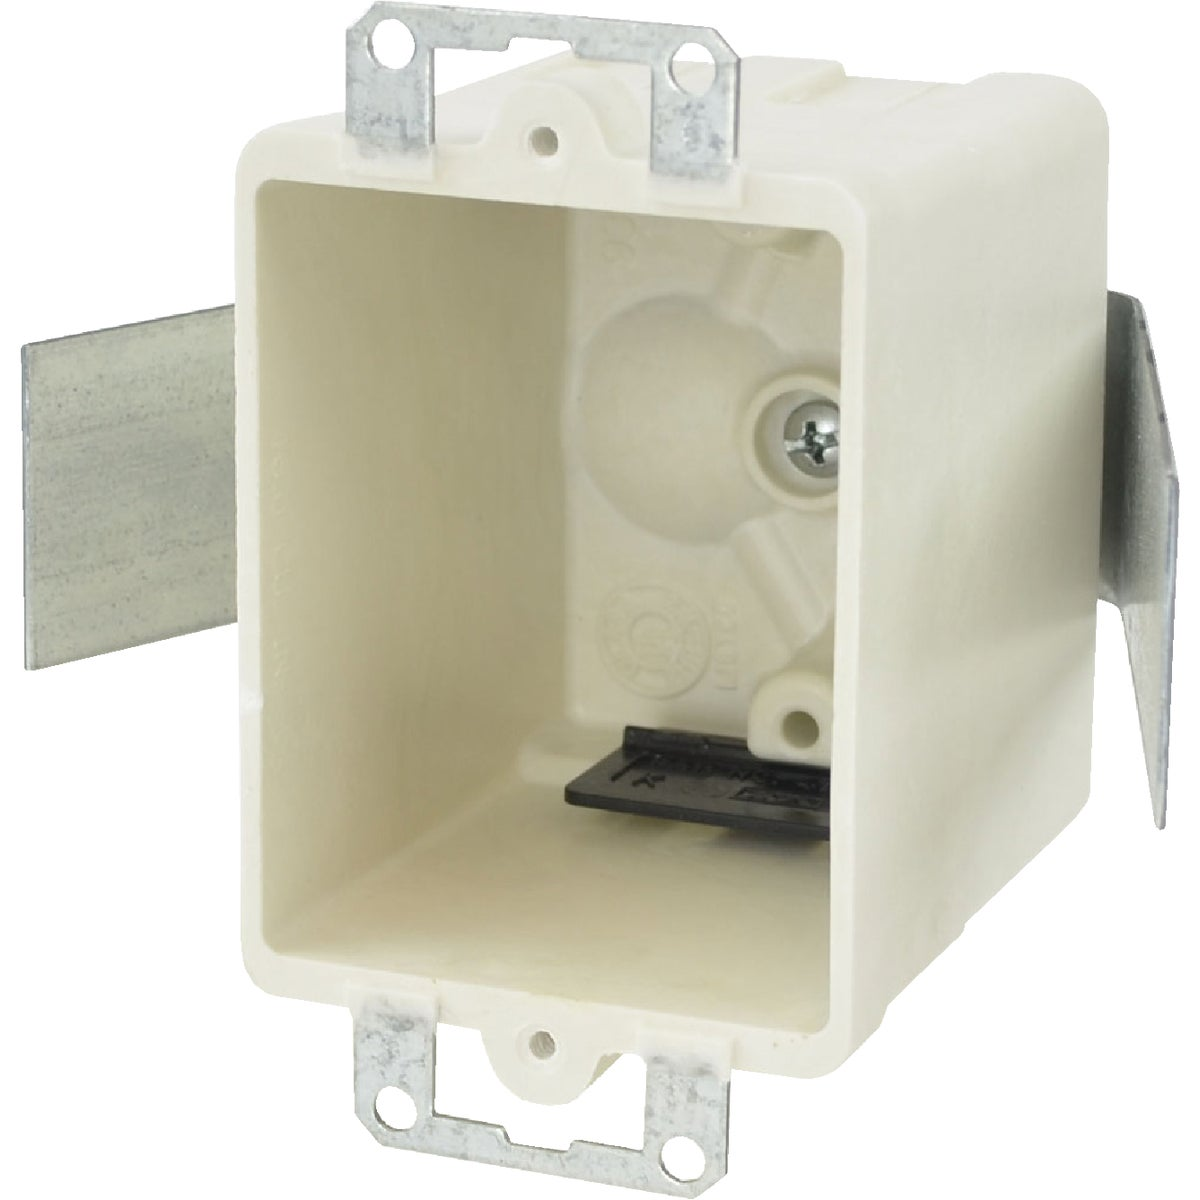 FIBERGLASS SWITCH BOX